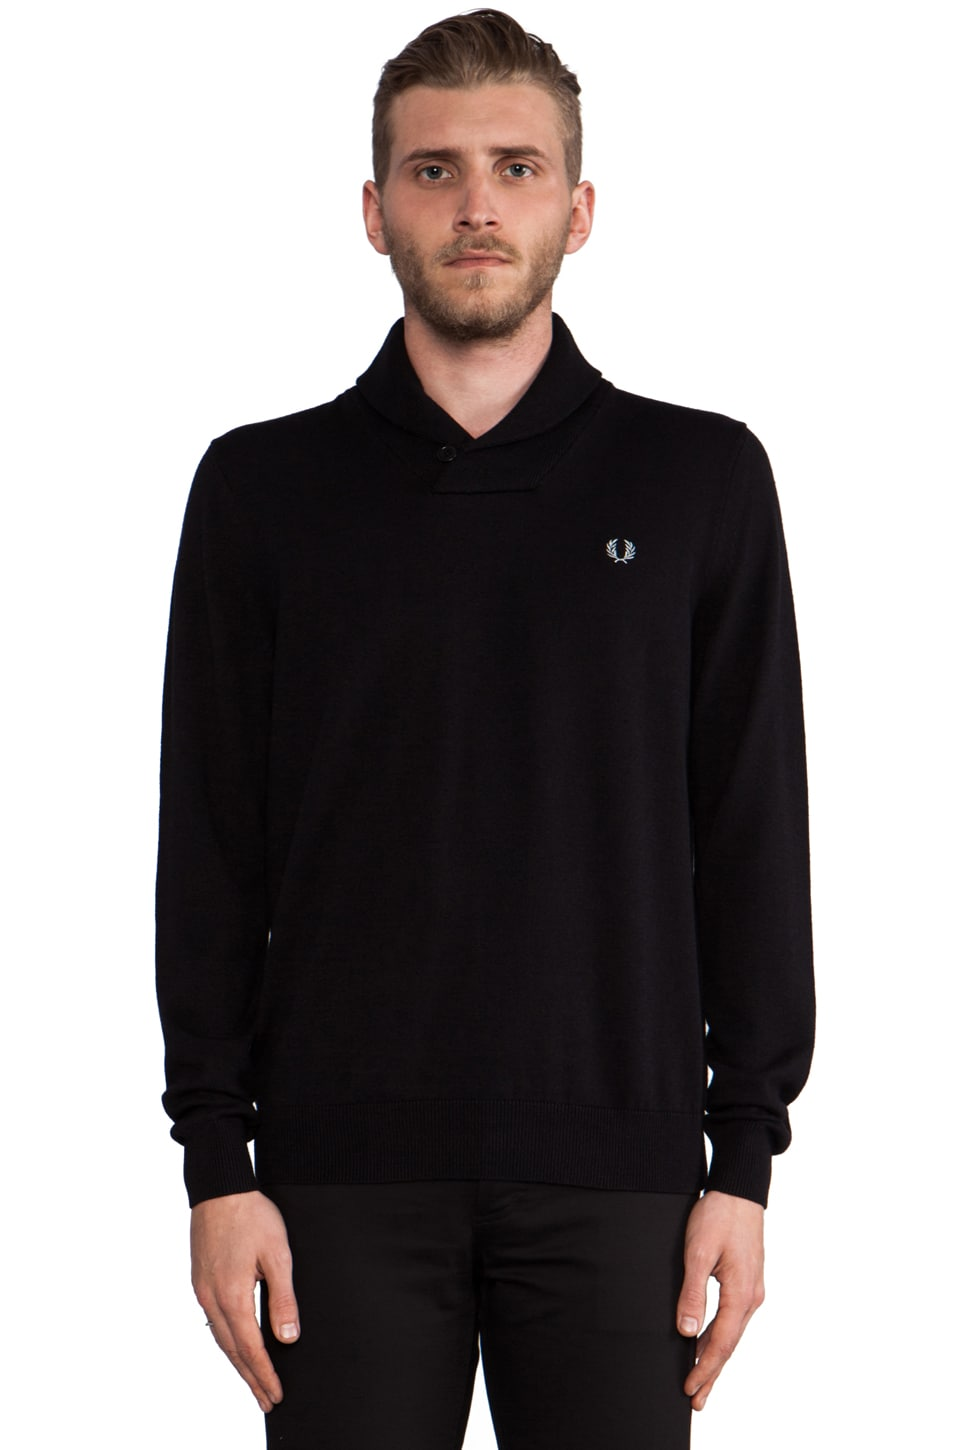 Fred Perry Classic Shawl Neck Sweater in Black